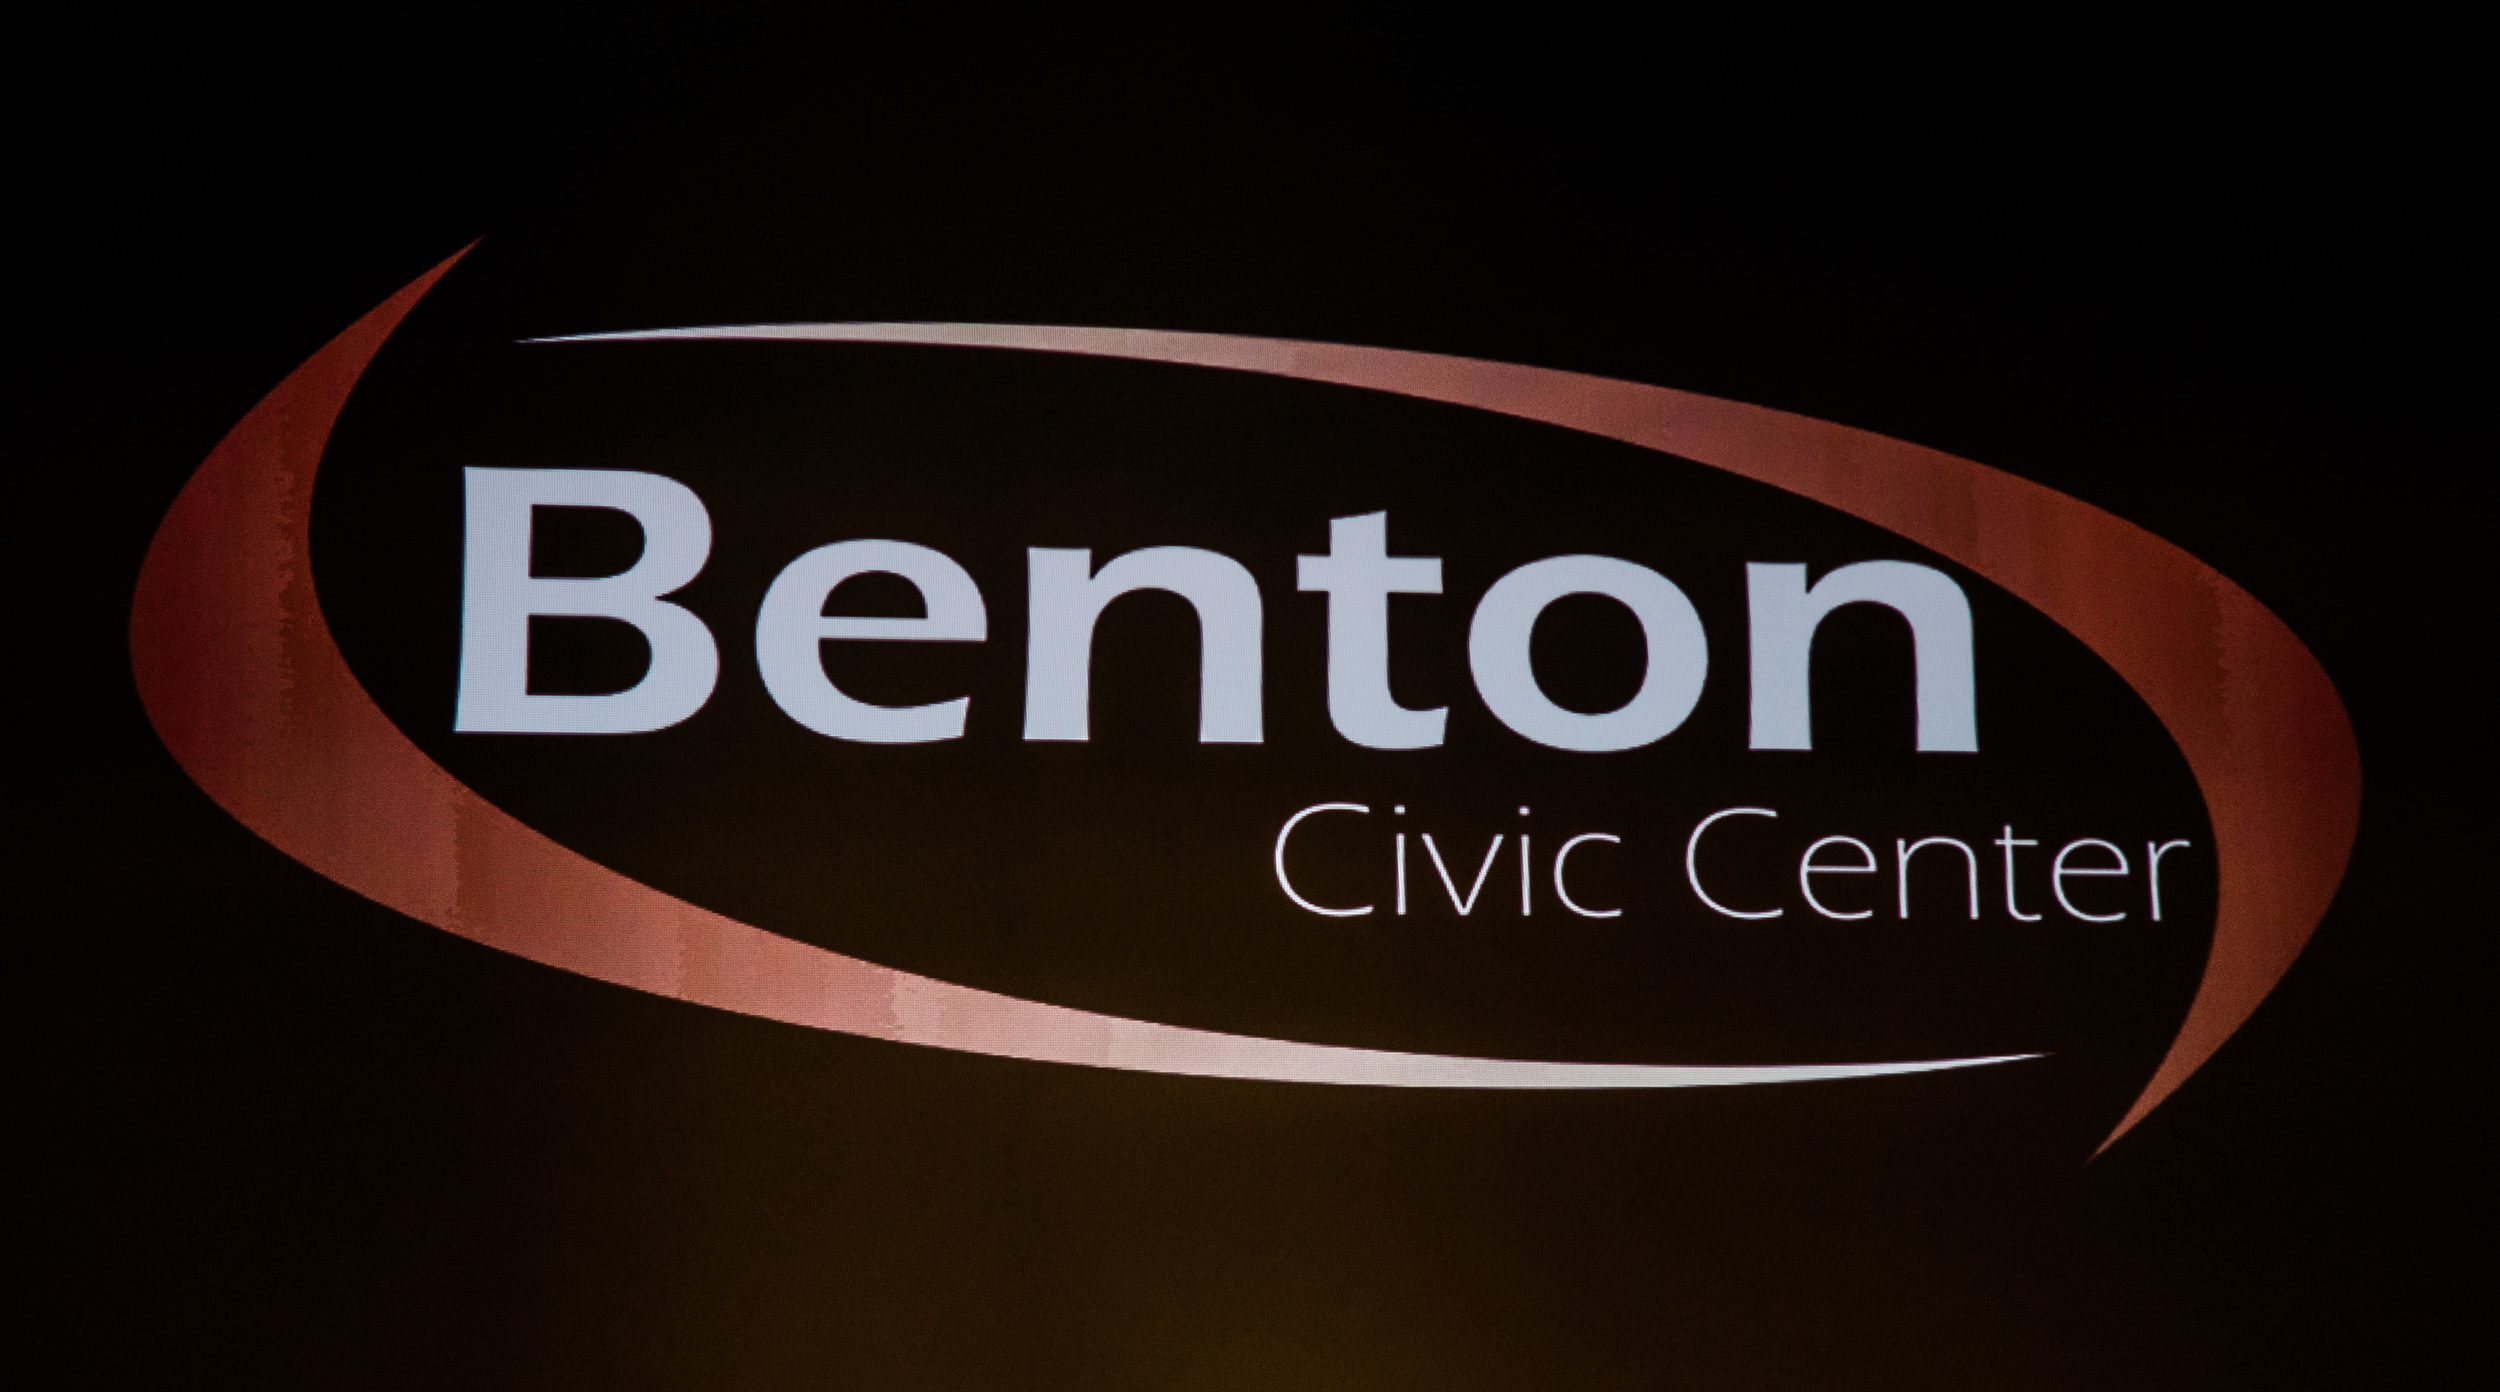 A special thanks to the Benton Civic Center for hosting this great event and bringing amazing entertainment to the community. They delivered an amazing experience with unbelievable sound, fresh refreshments, and comfortable seating. Click the image above to see their upcoming events and purchase tickets.